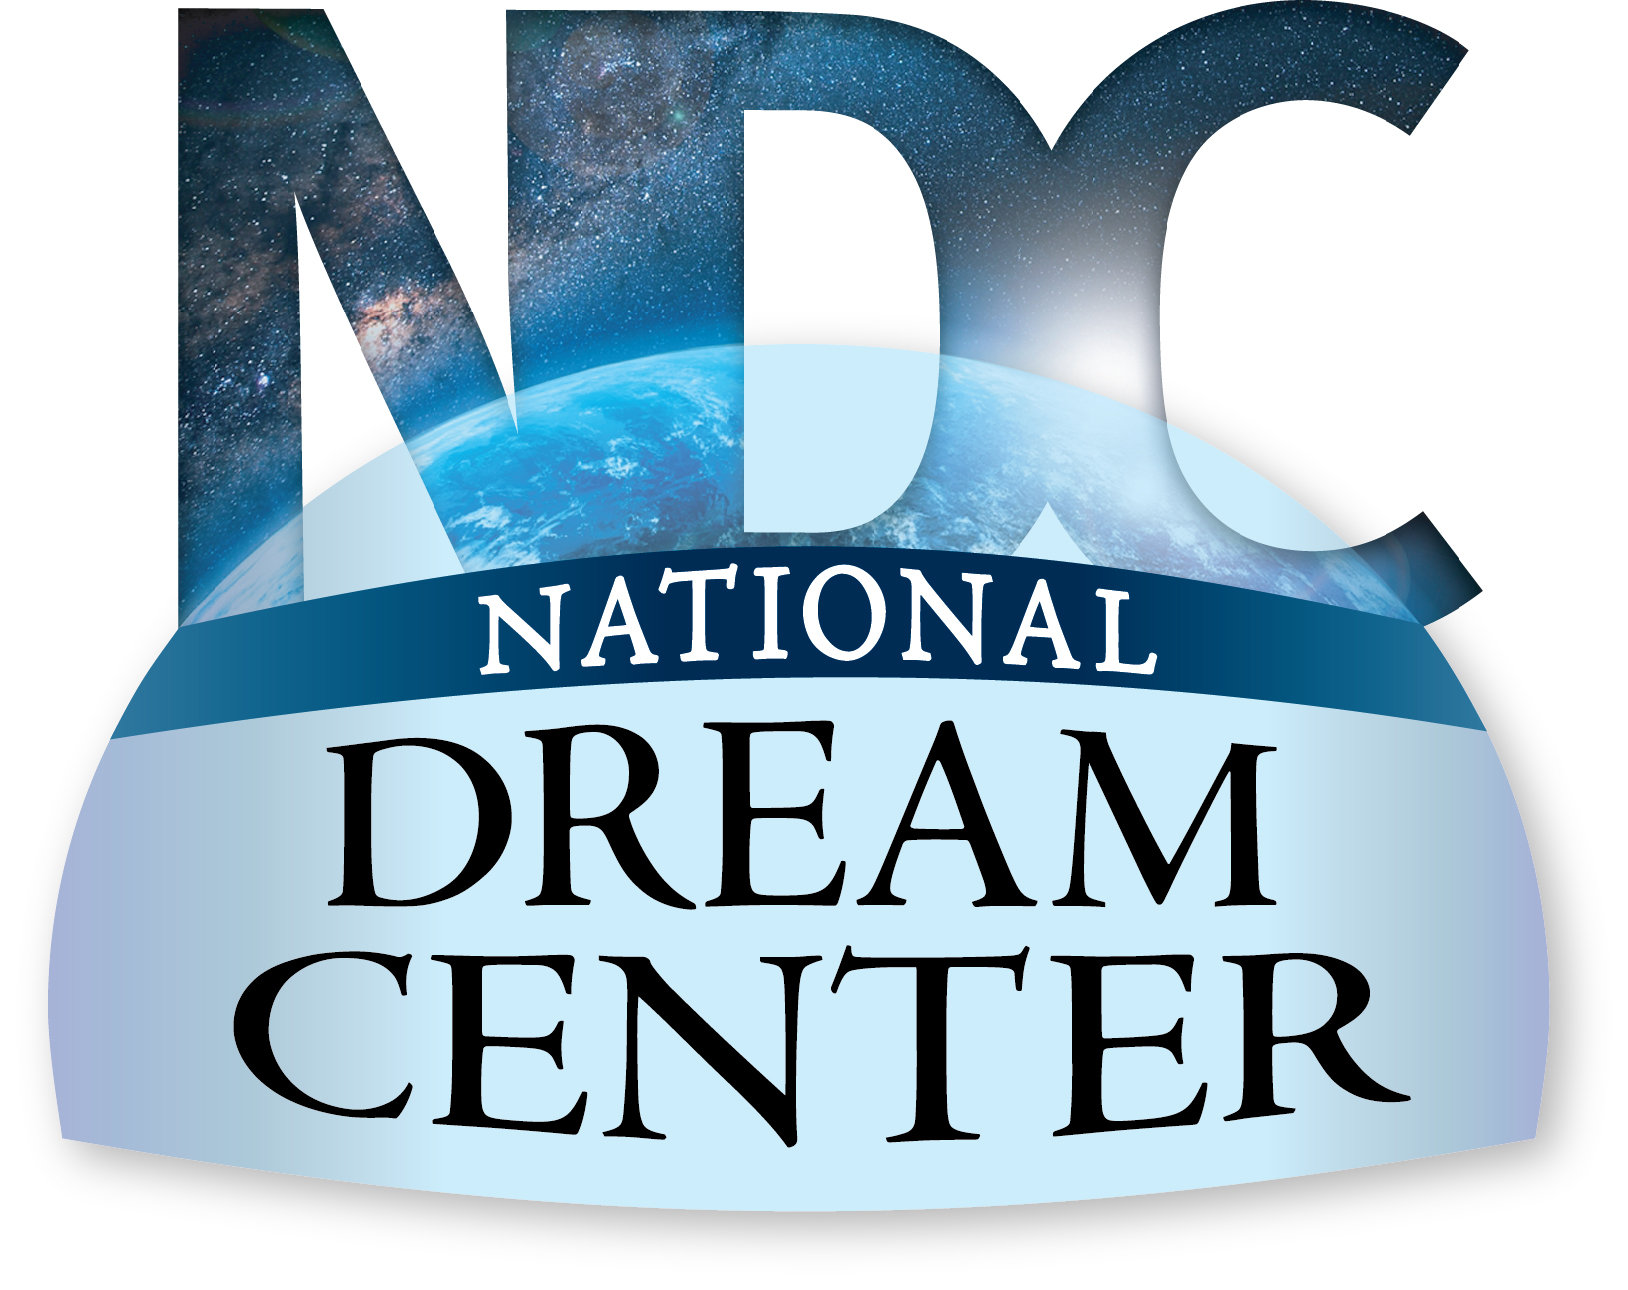 Welcome to National Dream Center!